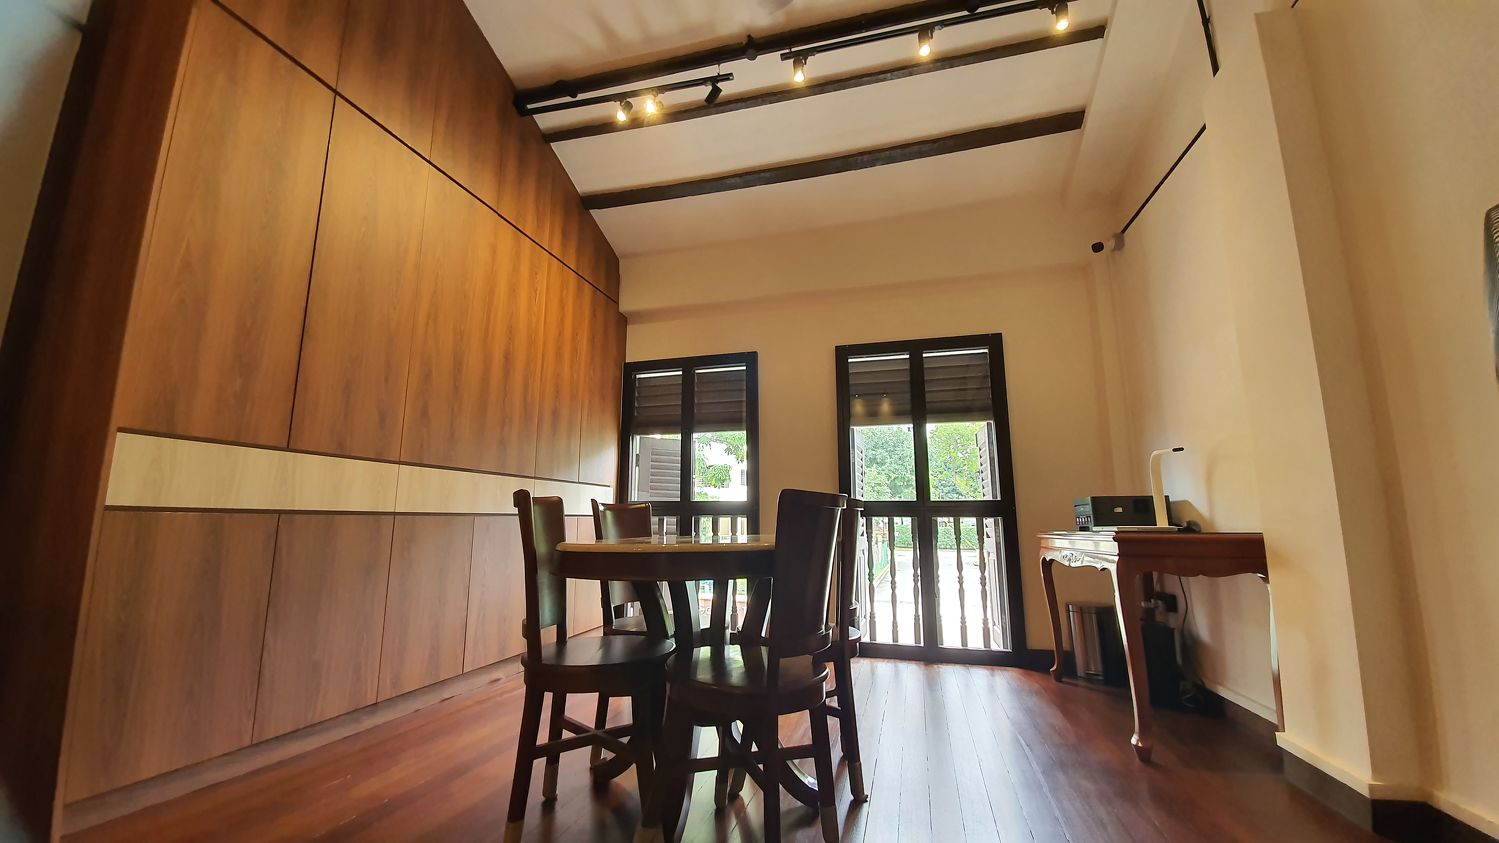 Conservation House on Onan Road - EDGEPROP SINGAPORE